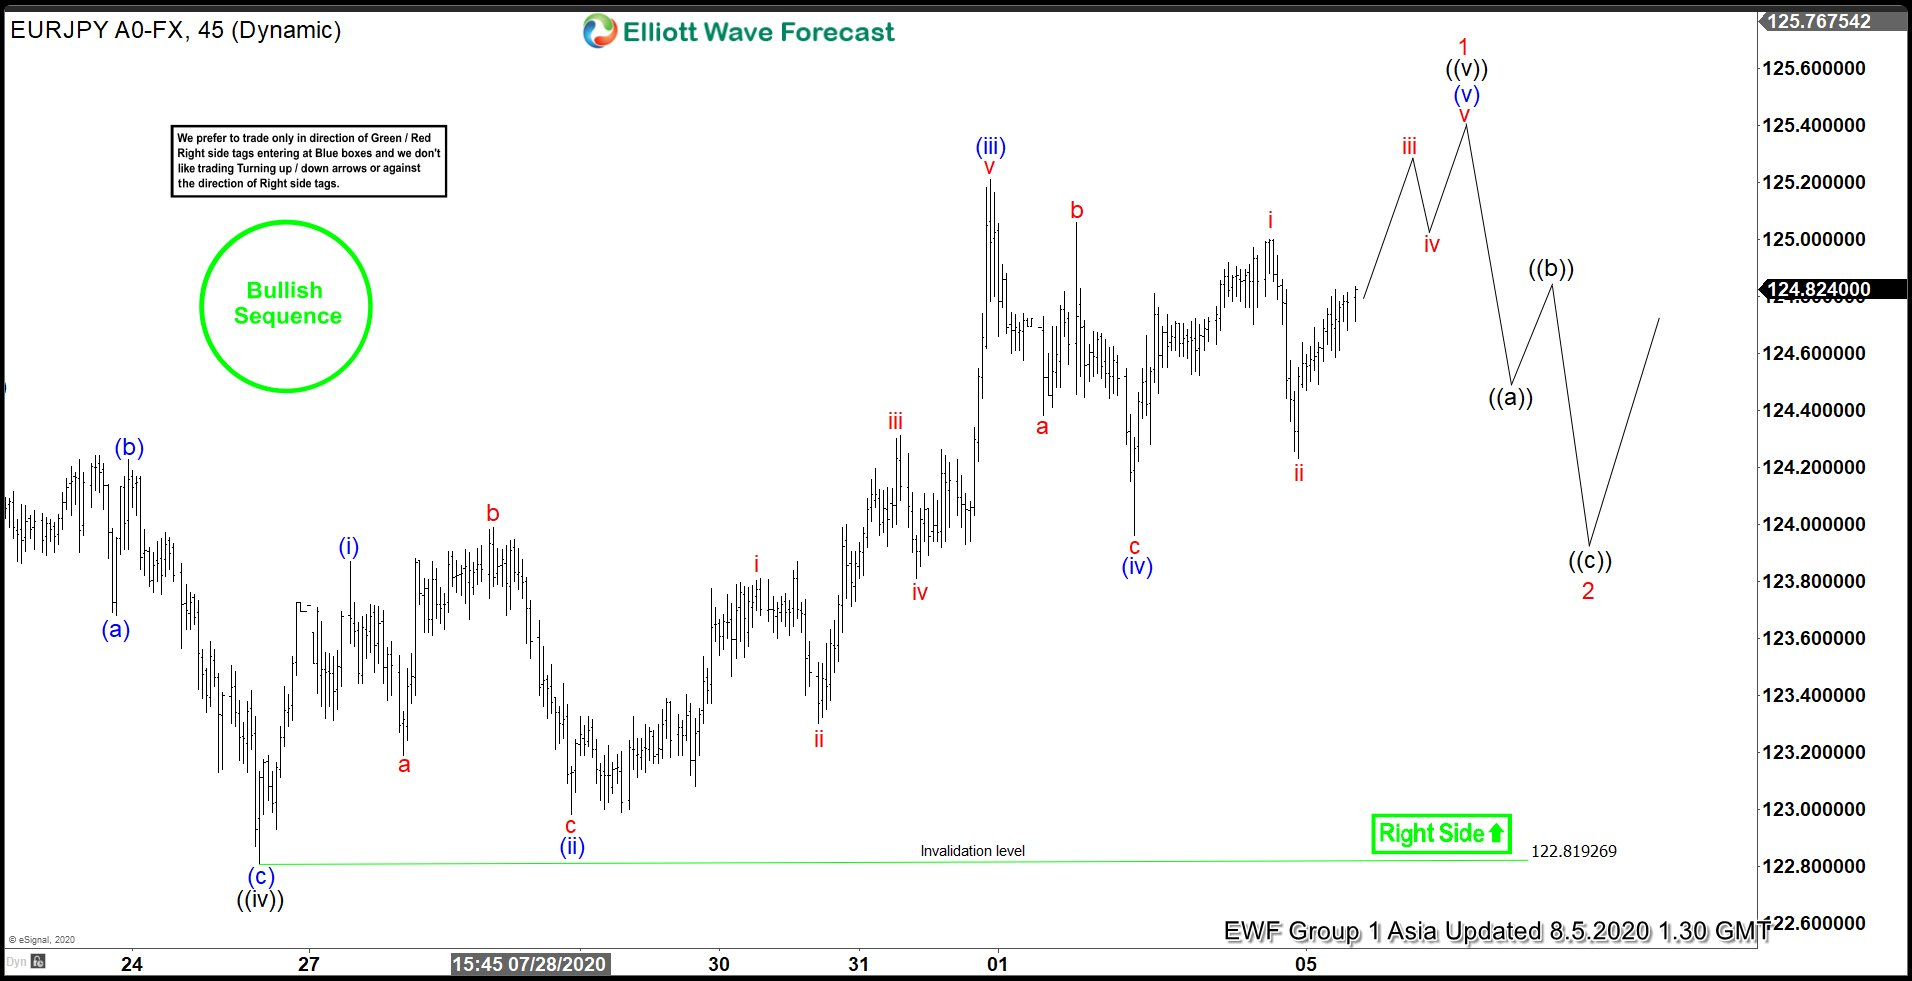 Elliott Wave View: Incomplete Bullish Sequence in EURJPY